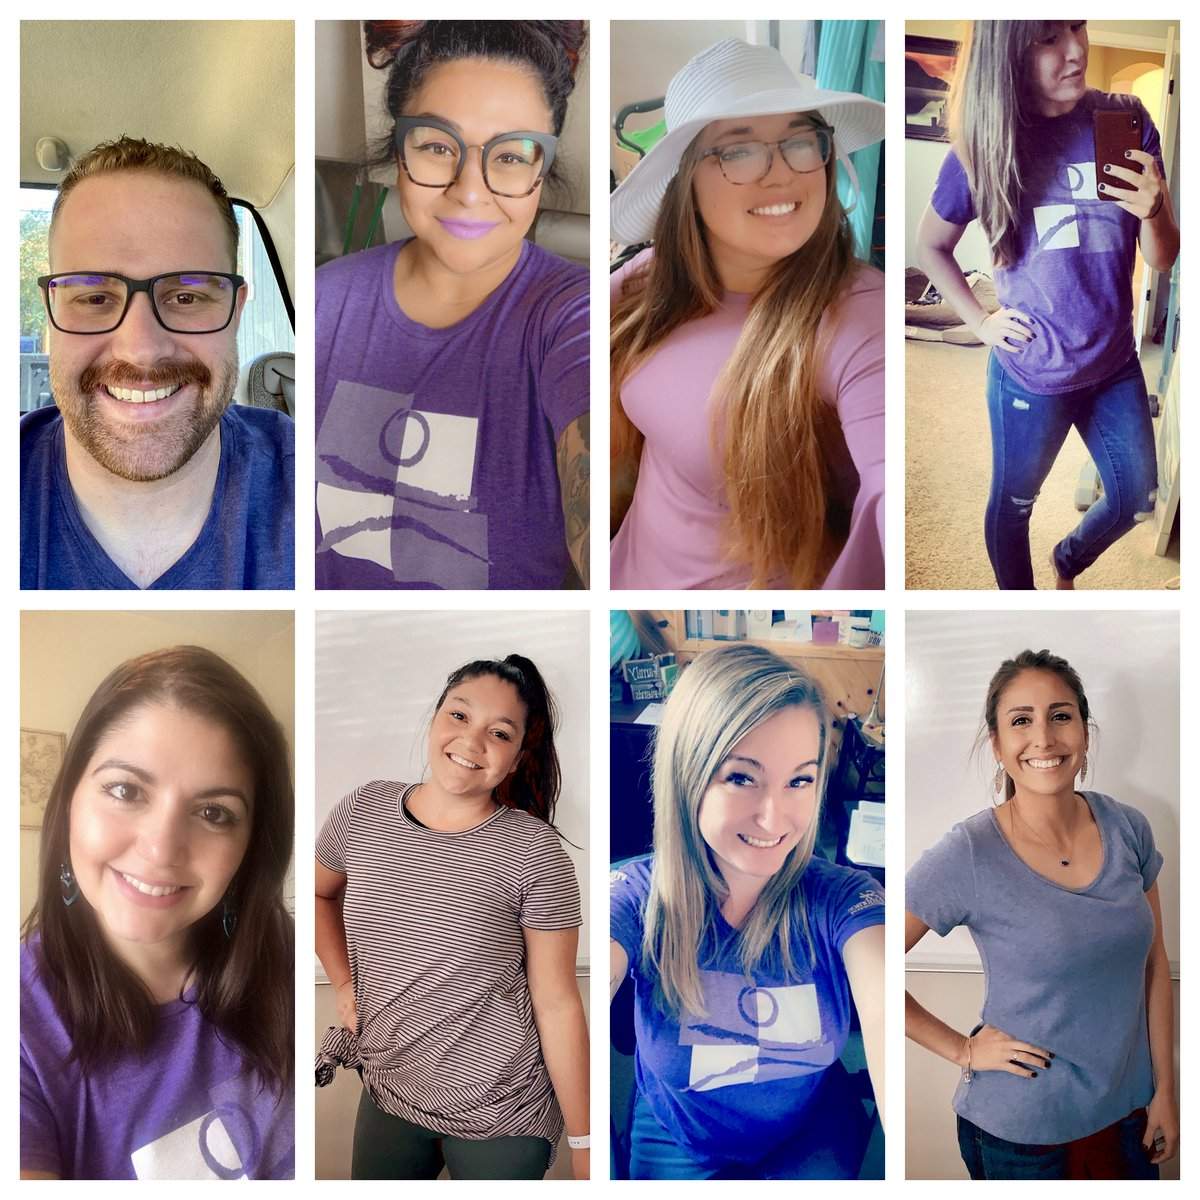 Purple Thursday is a day dedicated to showing support for survivors of domestic violence. Join us: wear purple, order purple @ a #LoveShouldBeSweet business, & share a purple pic using the hashtags #PurpleThursday #LoveShouldBeSweet #TellSomeone #ISpeakUp https://t.co/qFZpOHPjJW